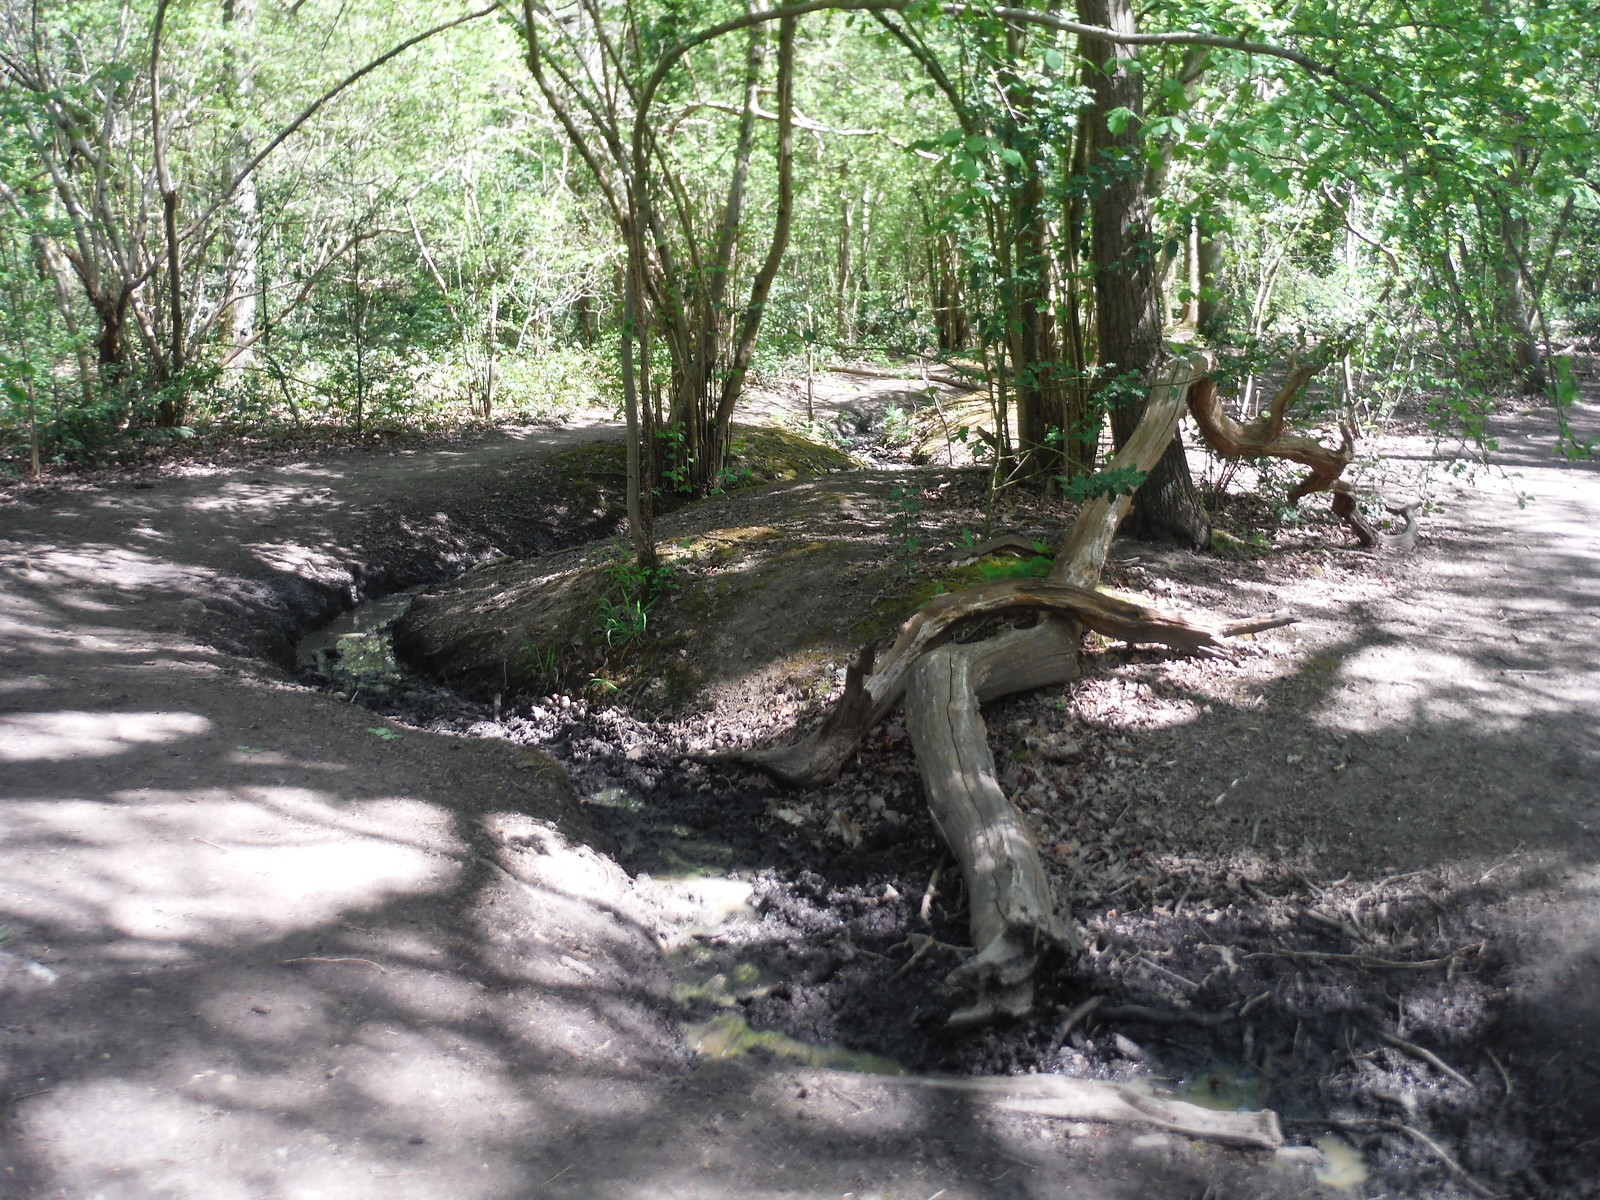 Streamlet in Oxleas Wood SWC Short Walk 44 - Oxleas Wood and Shooters Hill (Falconwood Circular)